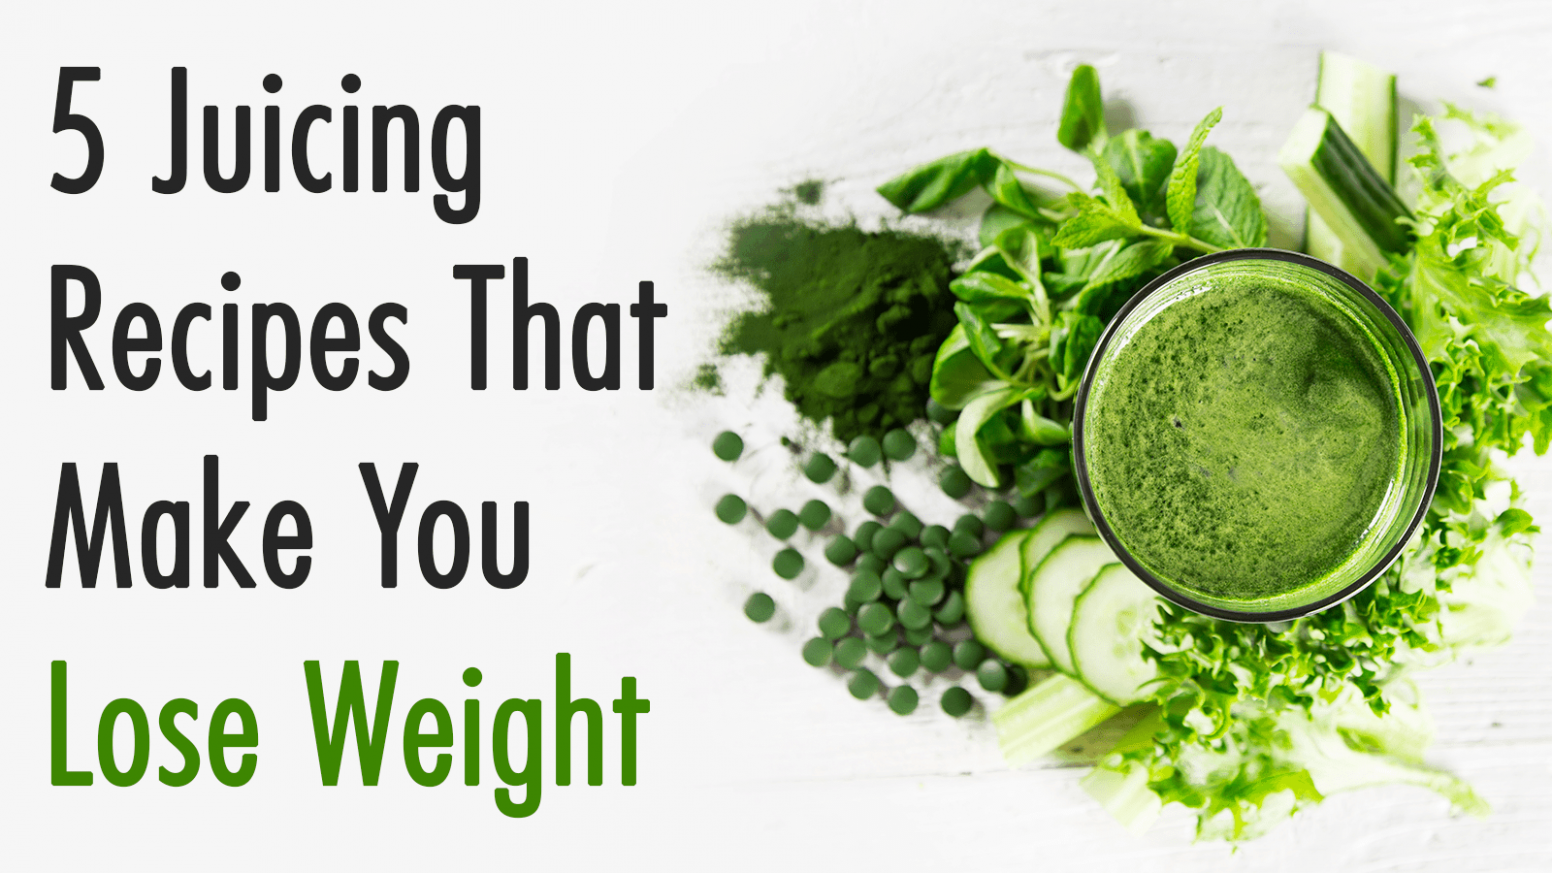 12 Juicing Recipes That Make You Lose Weight - Juicing Recipes For Weight Loss Green Juice